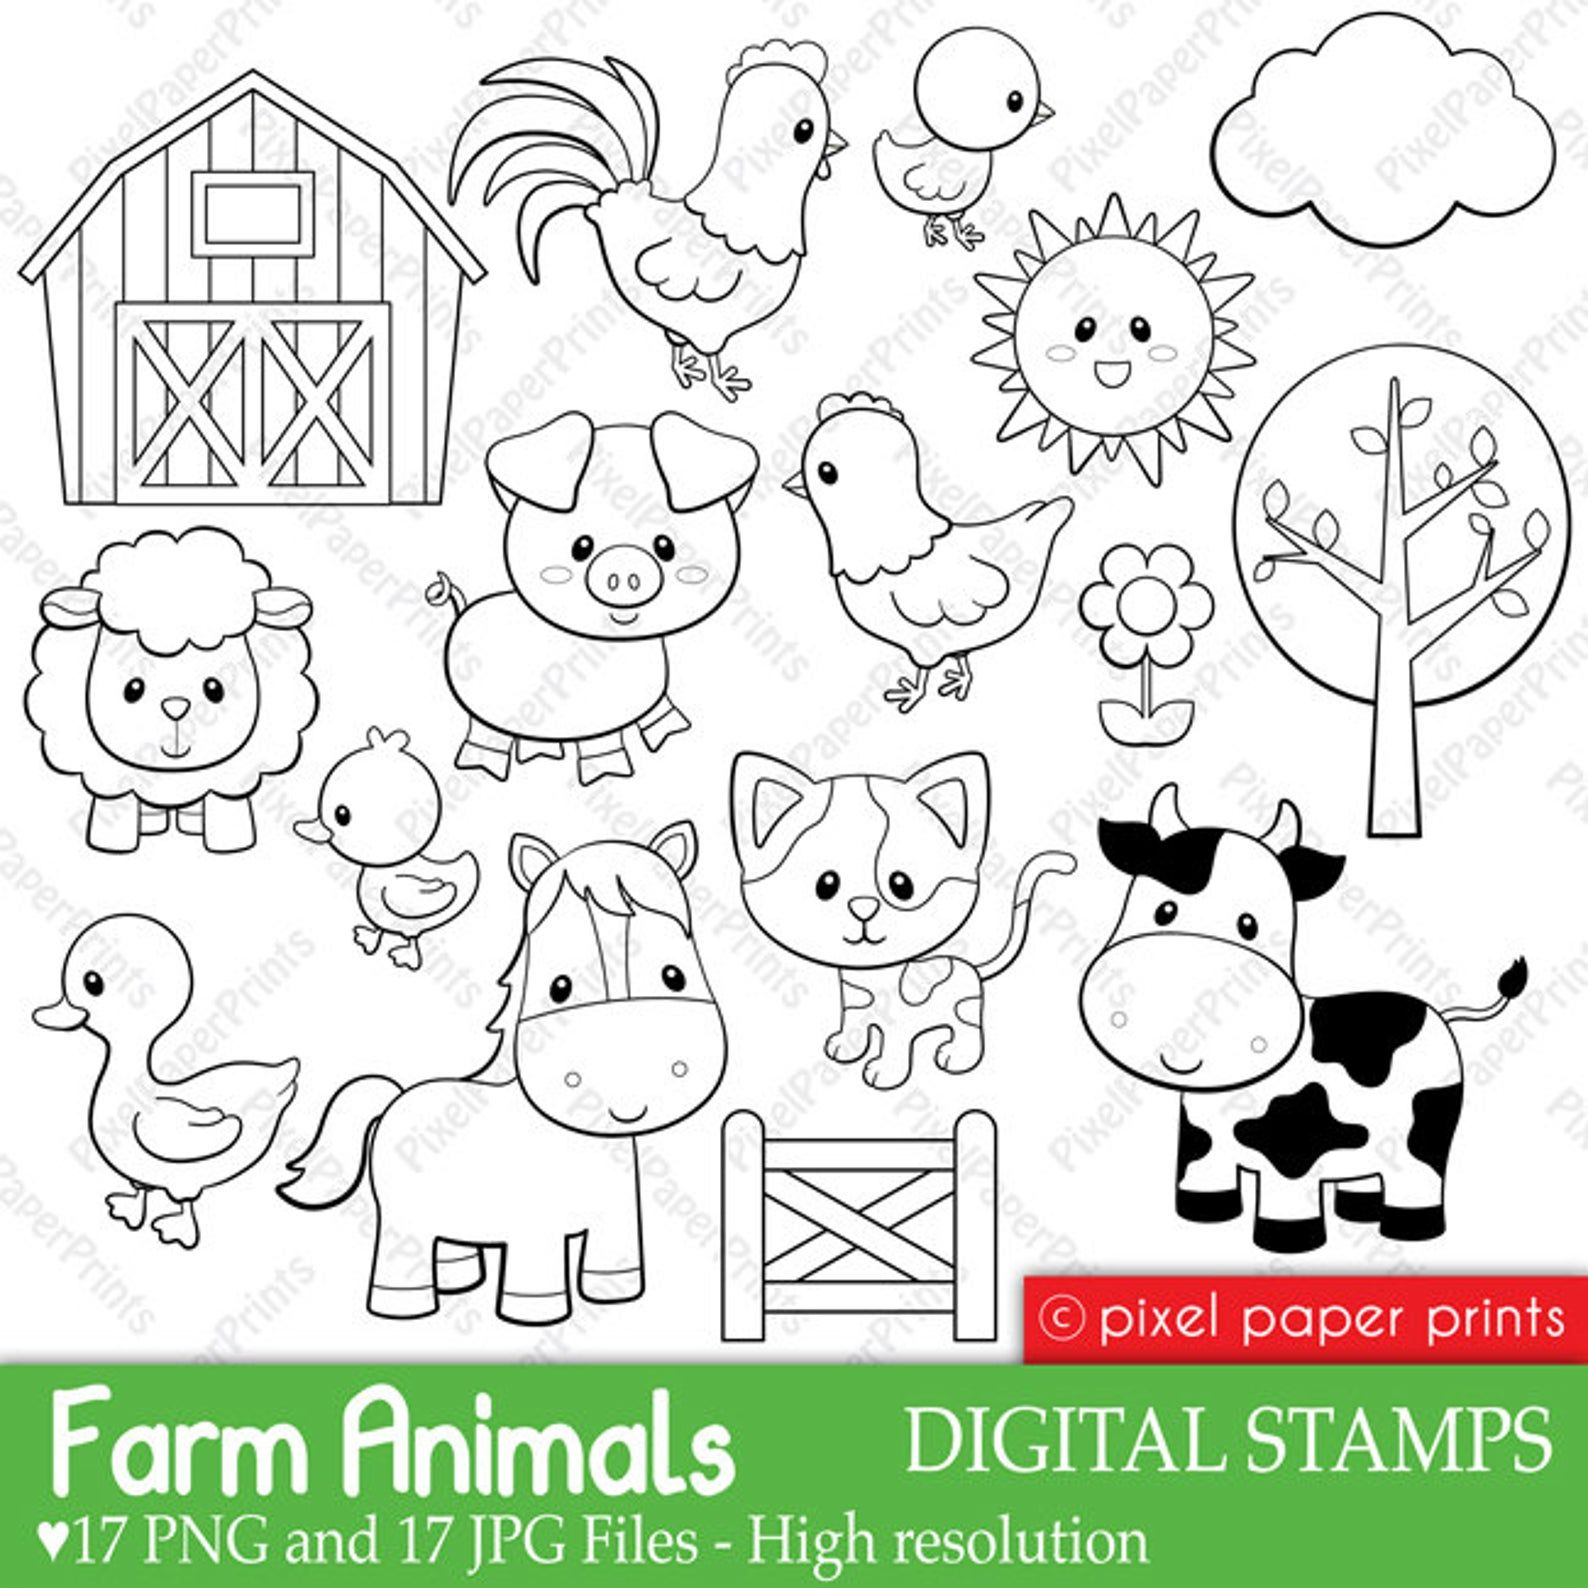 Farm Animals Digital Stamps Digital Stamps Farm Animal Coloring Pages Farm Animals